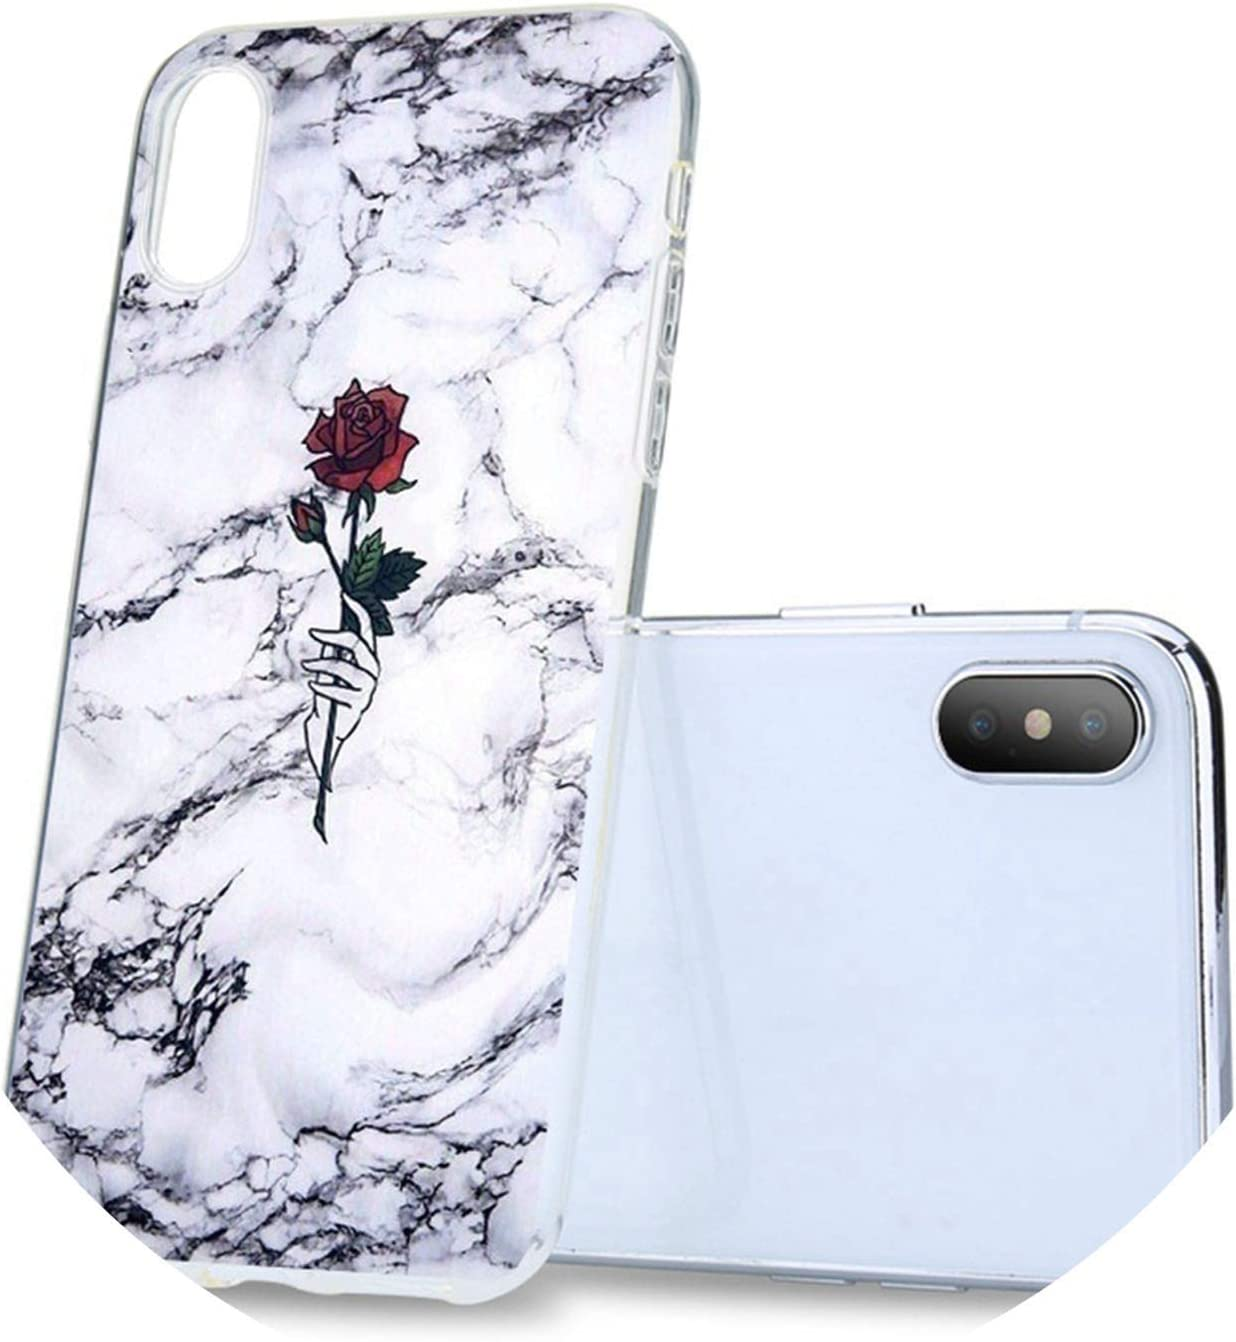 Marble Phone Case for iPhone 5 5s Se X XS Max XR Rose Triangle Soft Coque Case for iPhone 6 6S 7 8 Plus TPU Back Covers,2,for iPhone 7 8